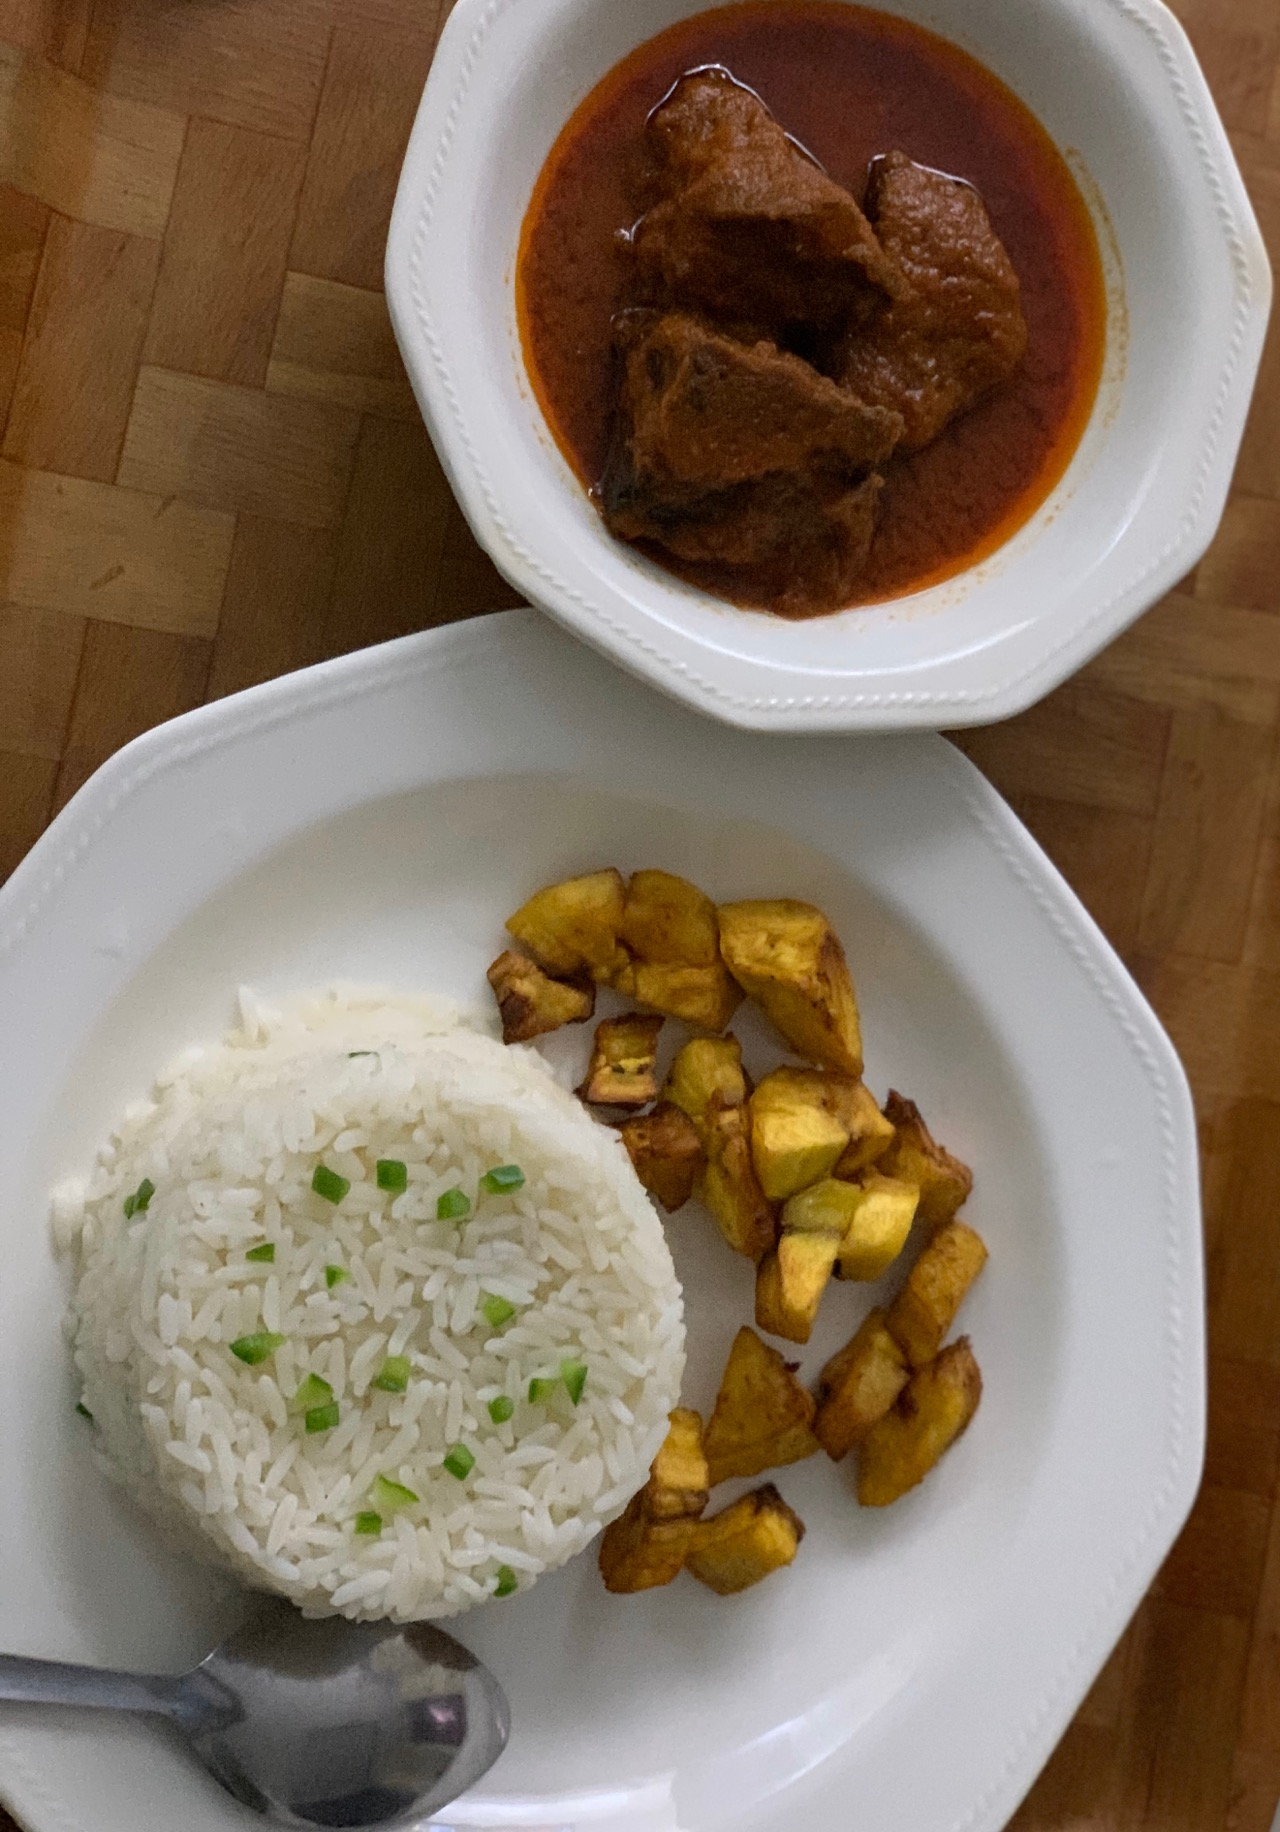 #cookingrecipehq rice ,plantain with cow meat stew😍😍😘